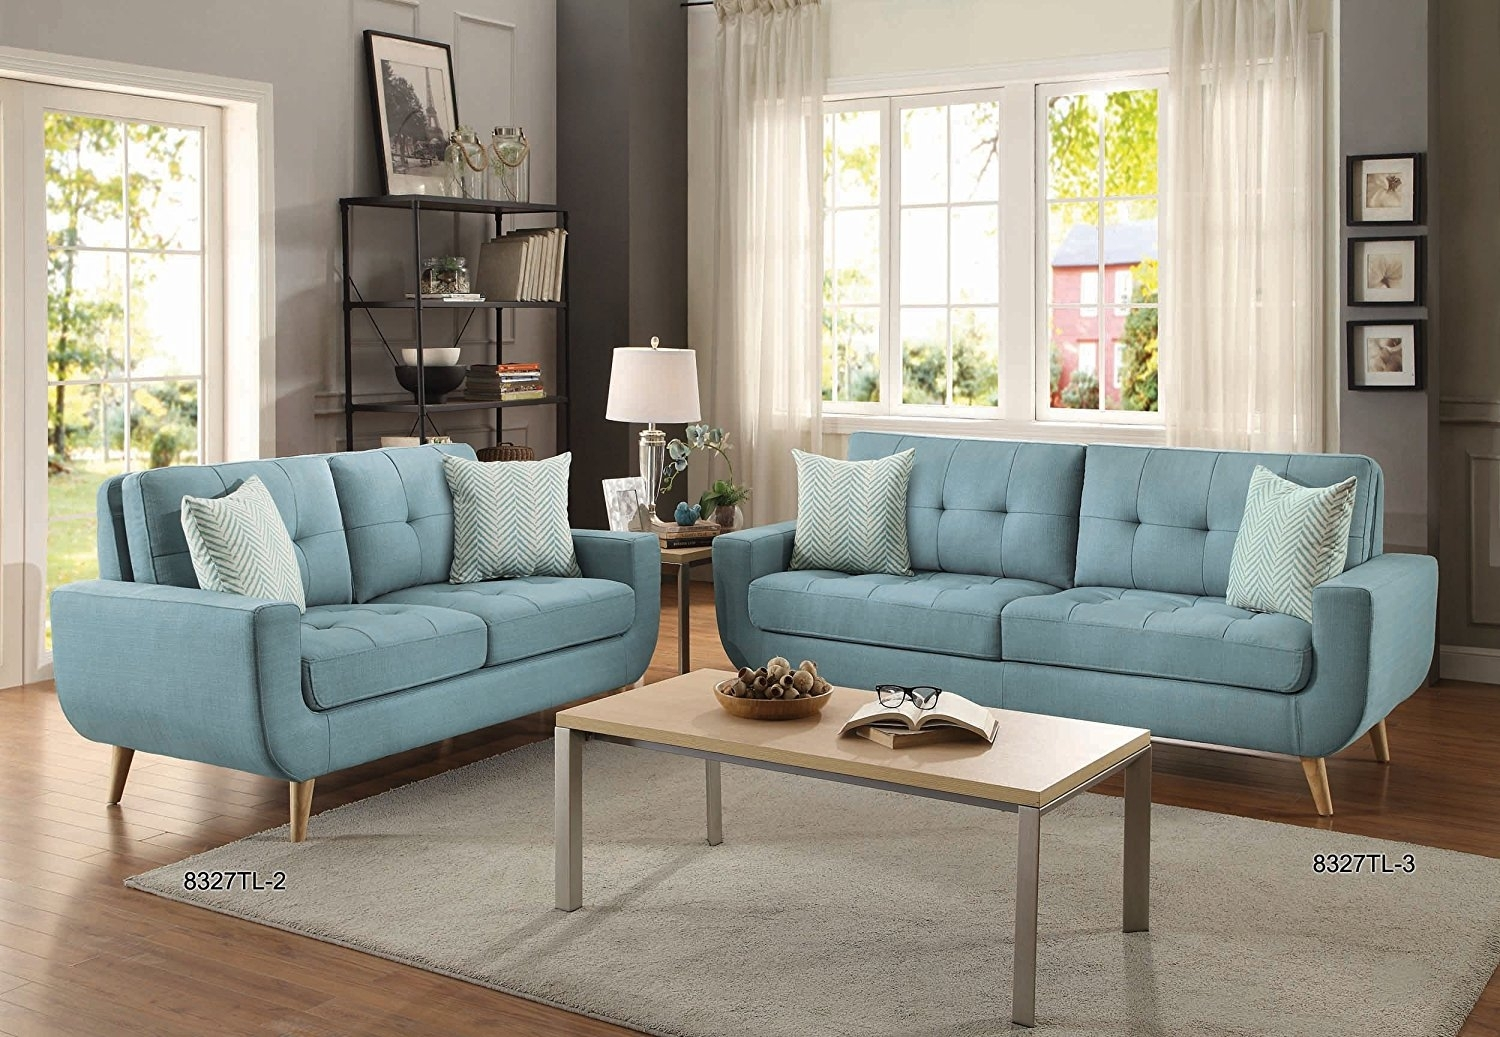 Furniture : Klaussner Hybrid Sofa Sofa Sale January Klaussner Inside Sectional Sofas At Barrie (View 5 of 10)